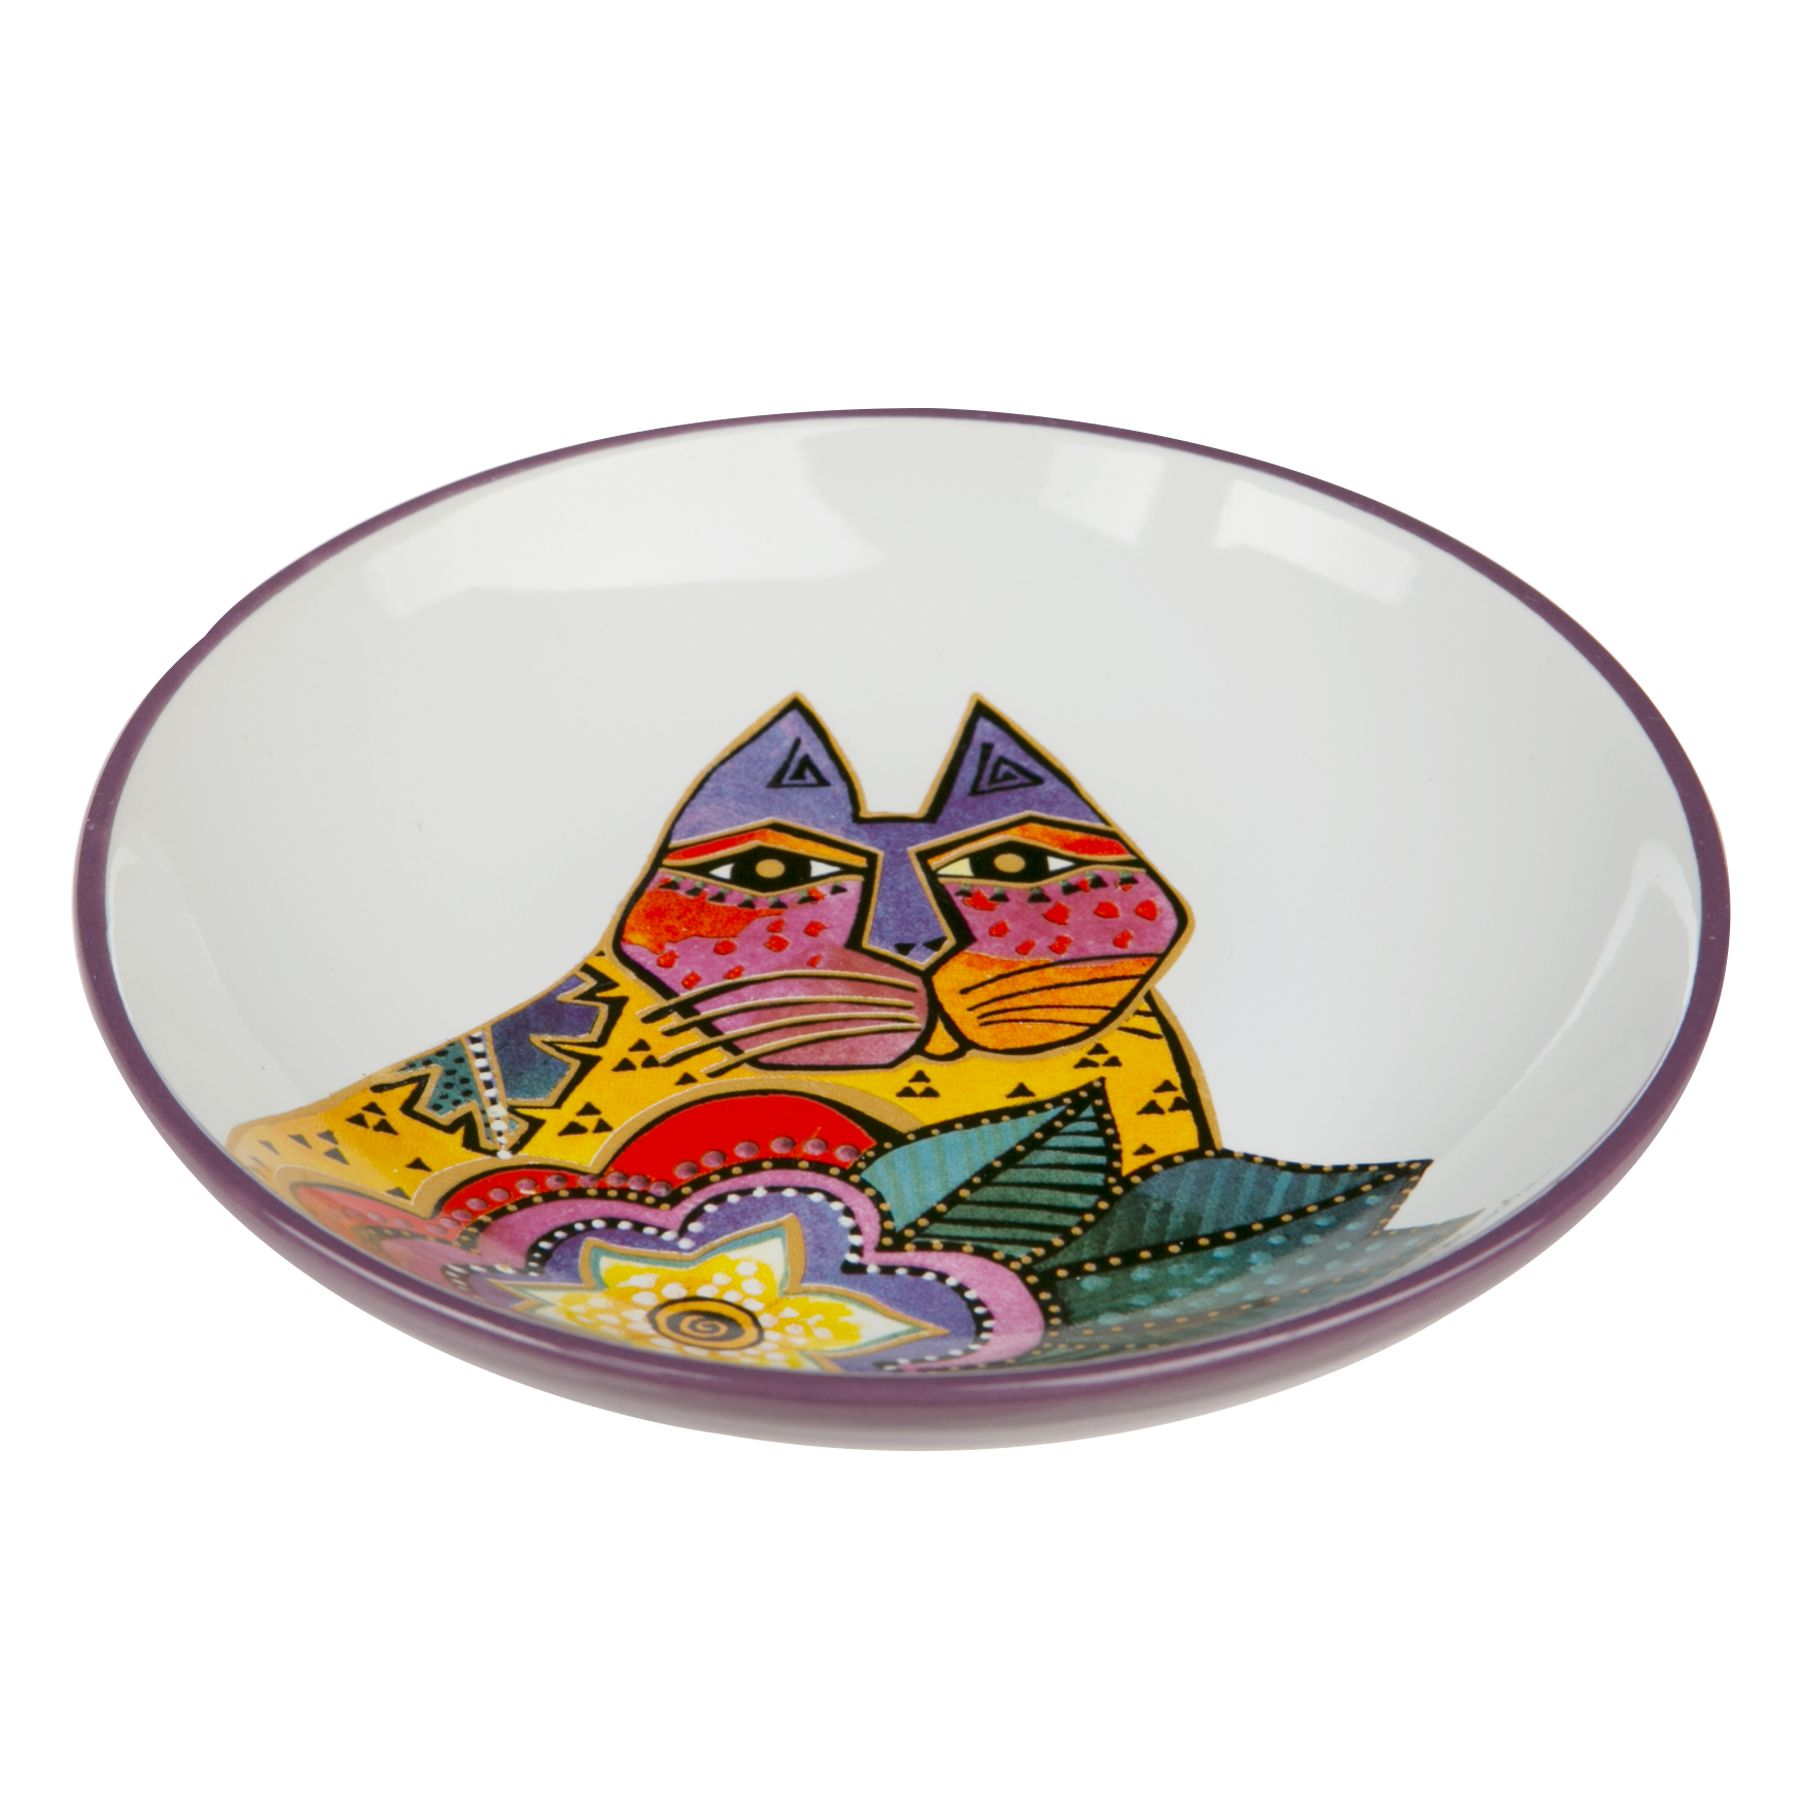 Laurel Burch Carlotta Cat Saucer Size 5 Fl Oz